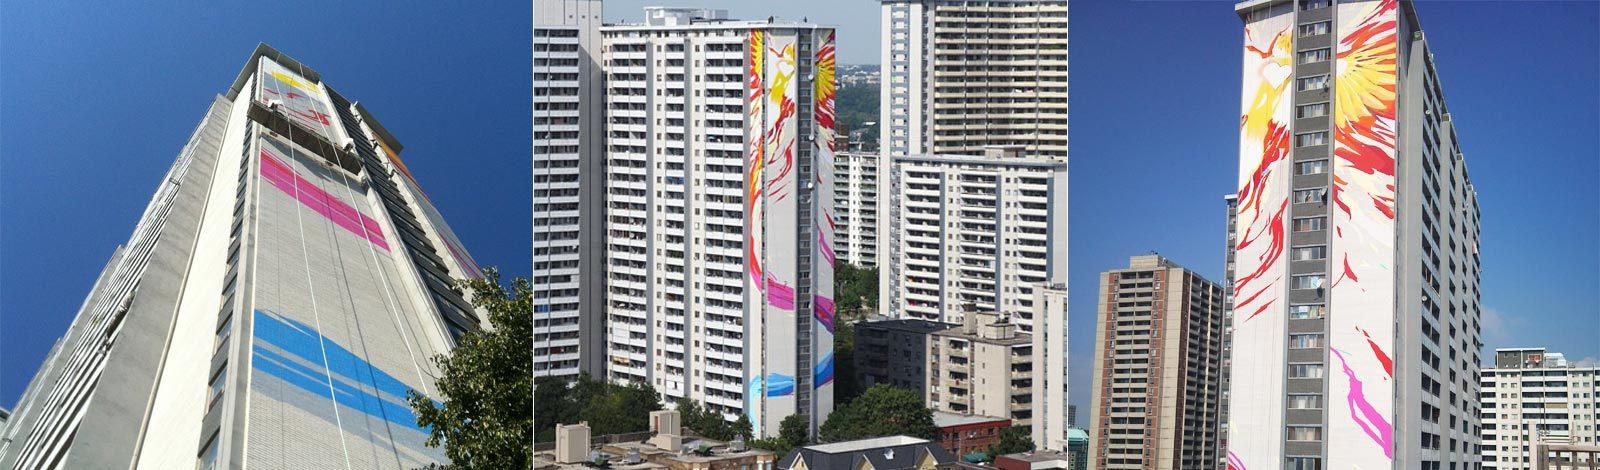 worlds tallest mural from different angles